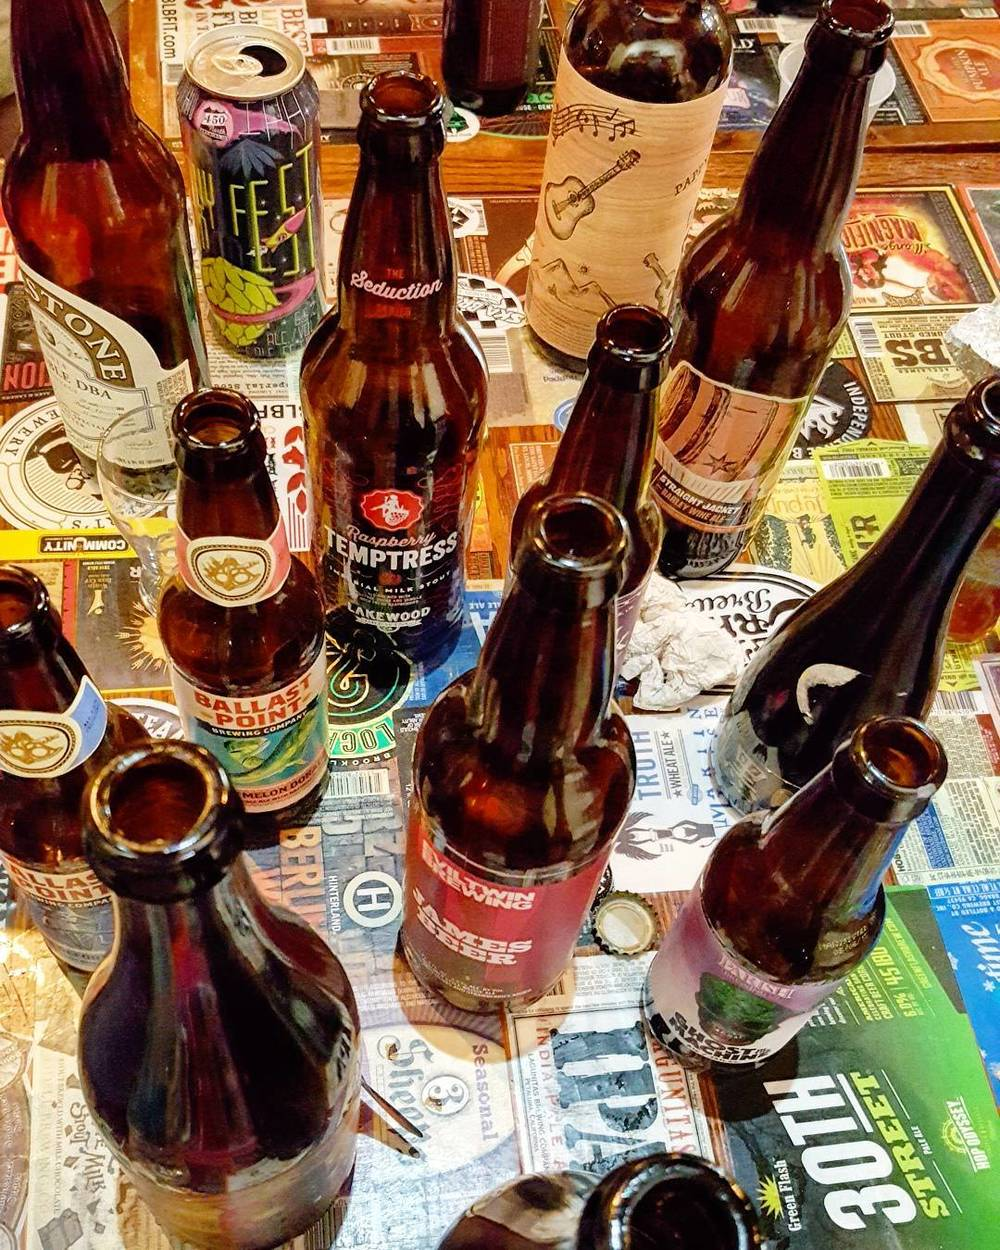 @greatamericanbrewerytour with a bottle share at The Bearded Monk last week.